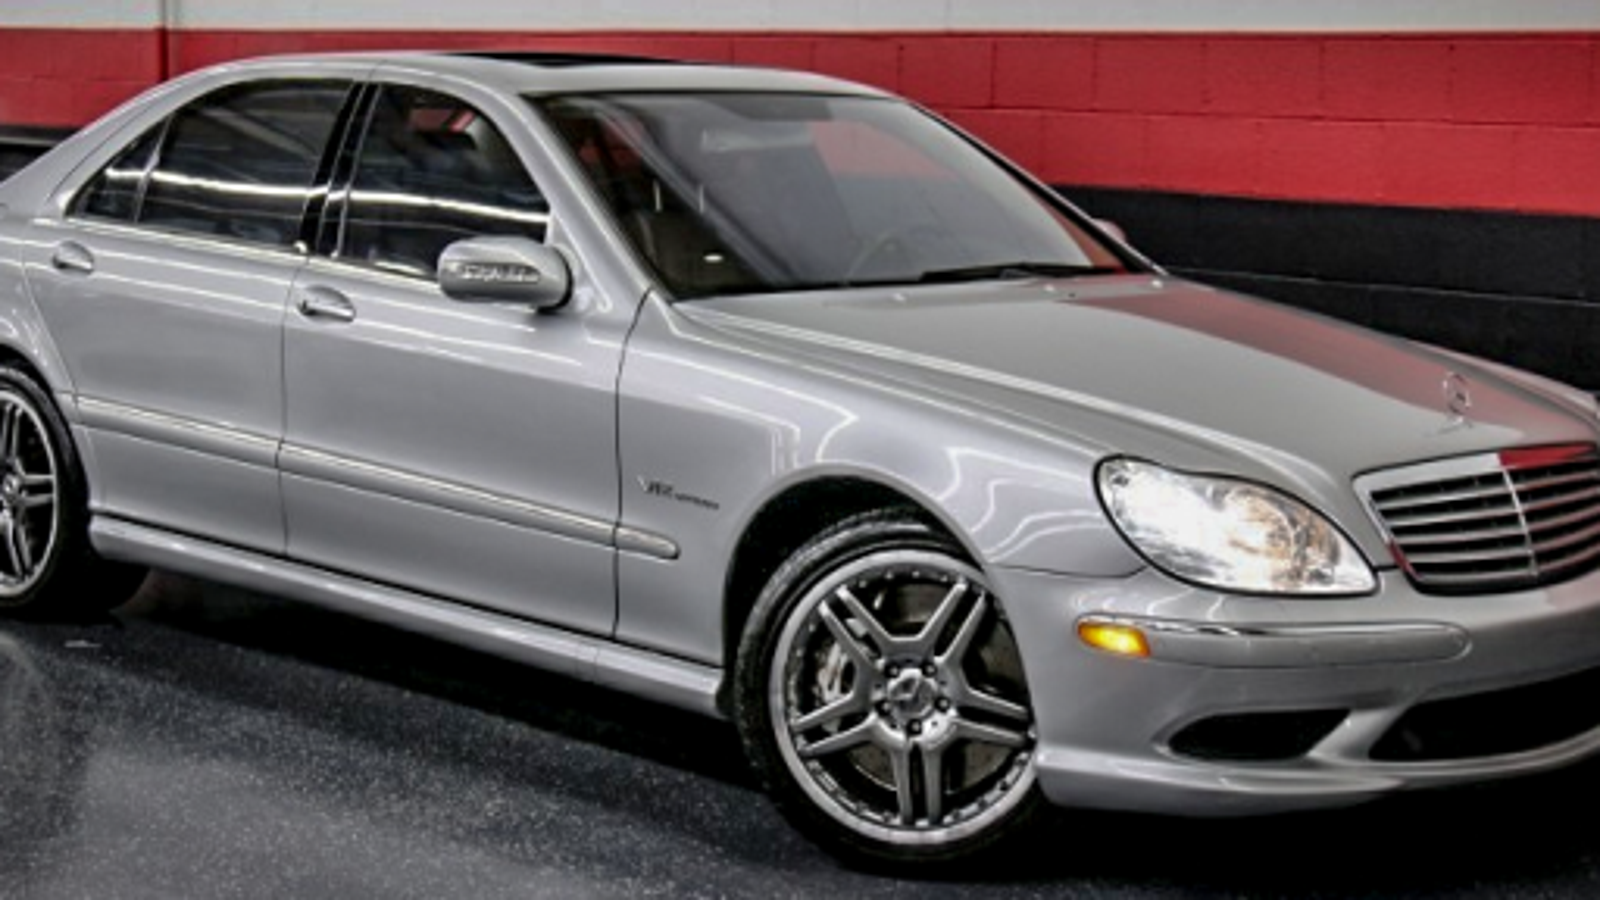 You Can Buy A 604-HP Mercedes S65 AMG For The Price Of A Ford Taurus